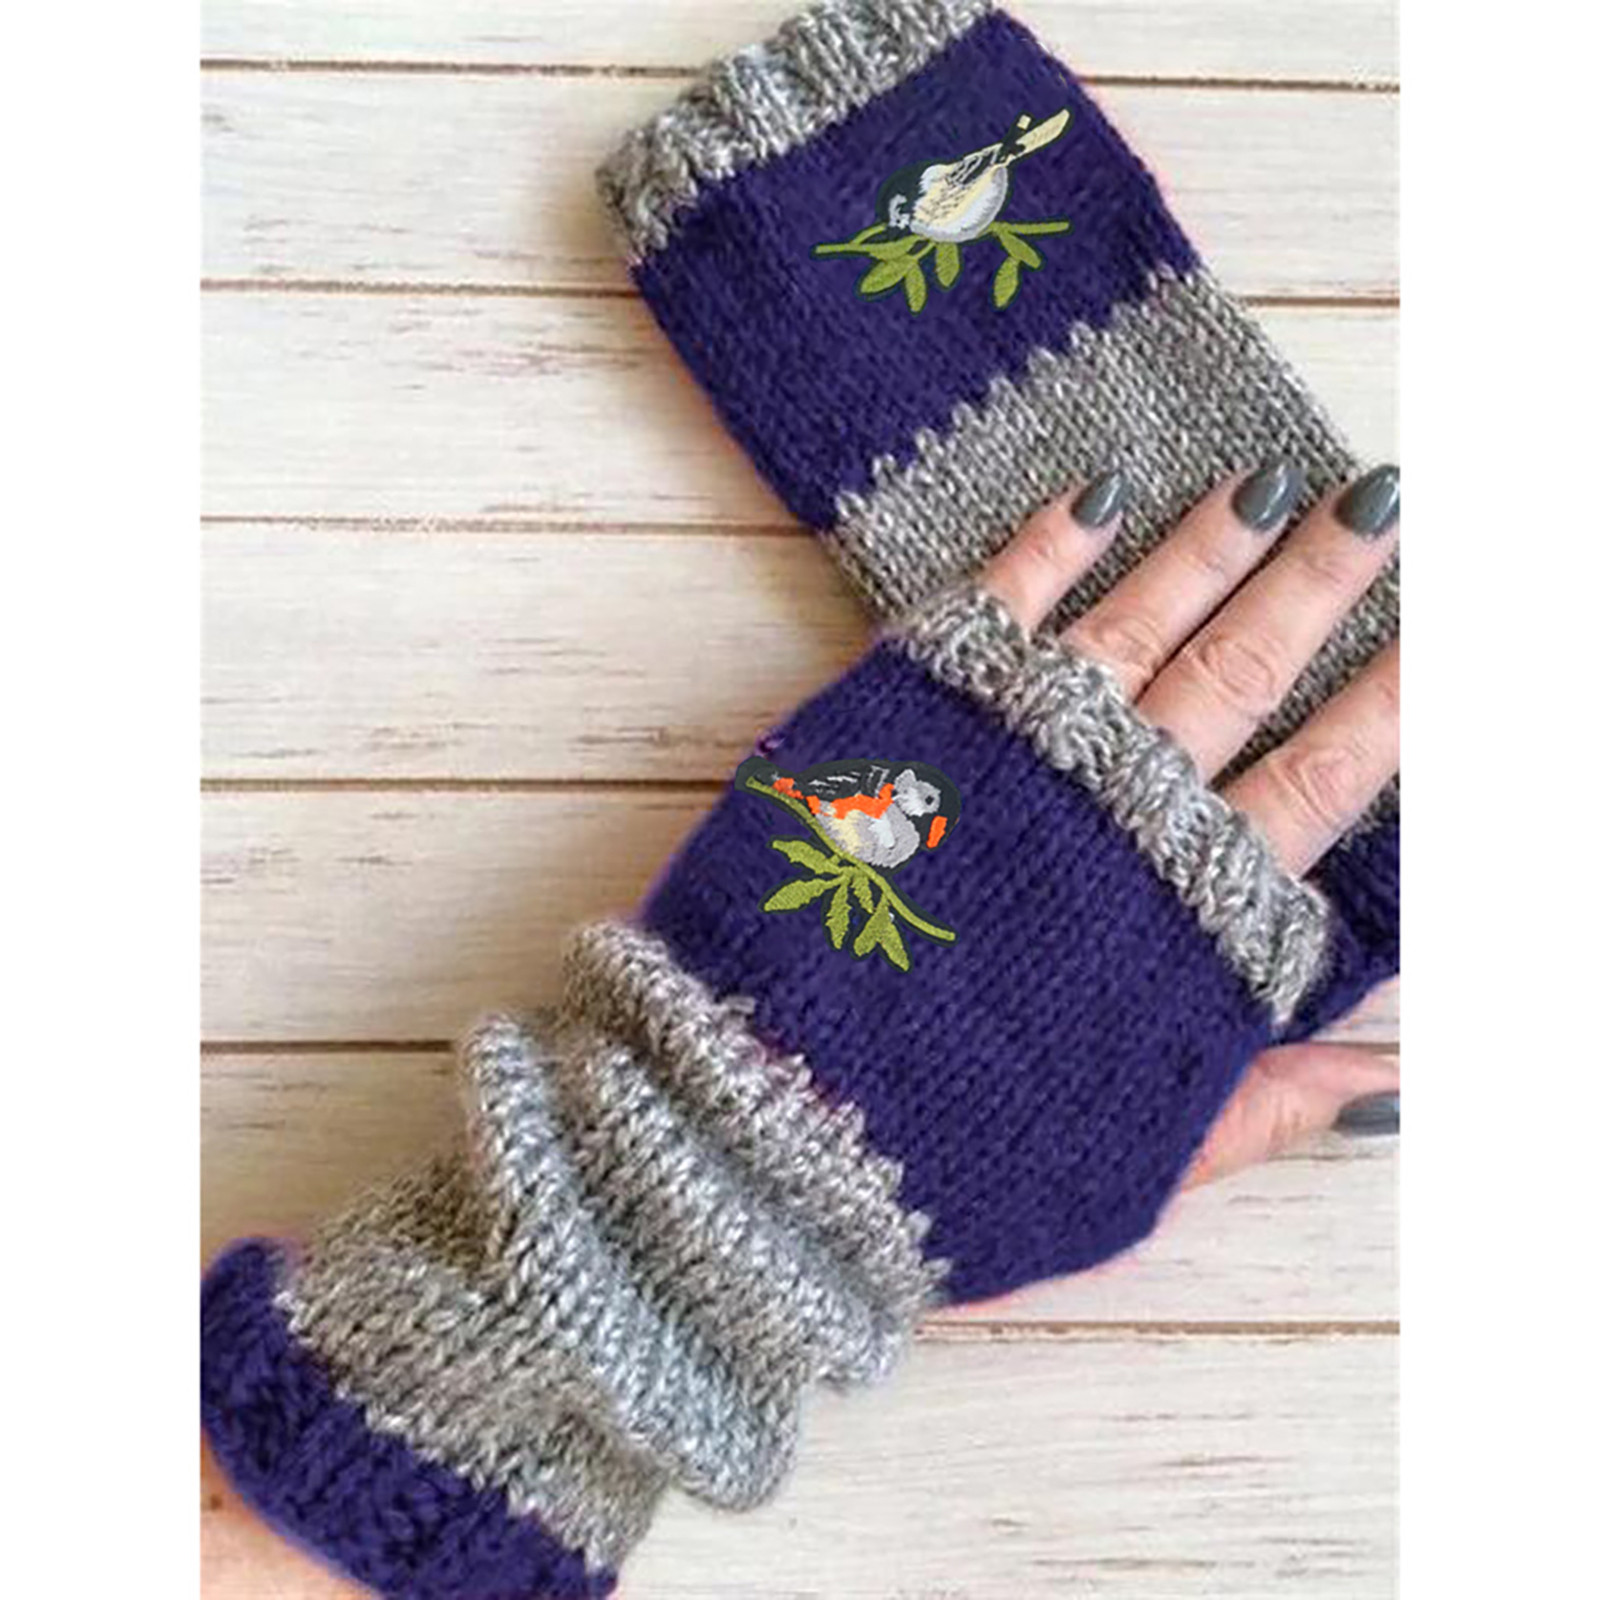 Women Fingerless Gloves Winter Knit Gloves Warm Plus Velvet Embroidere Outdoor Glove Without Fingers Printed Girls Mittens Gift